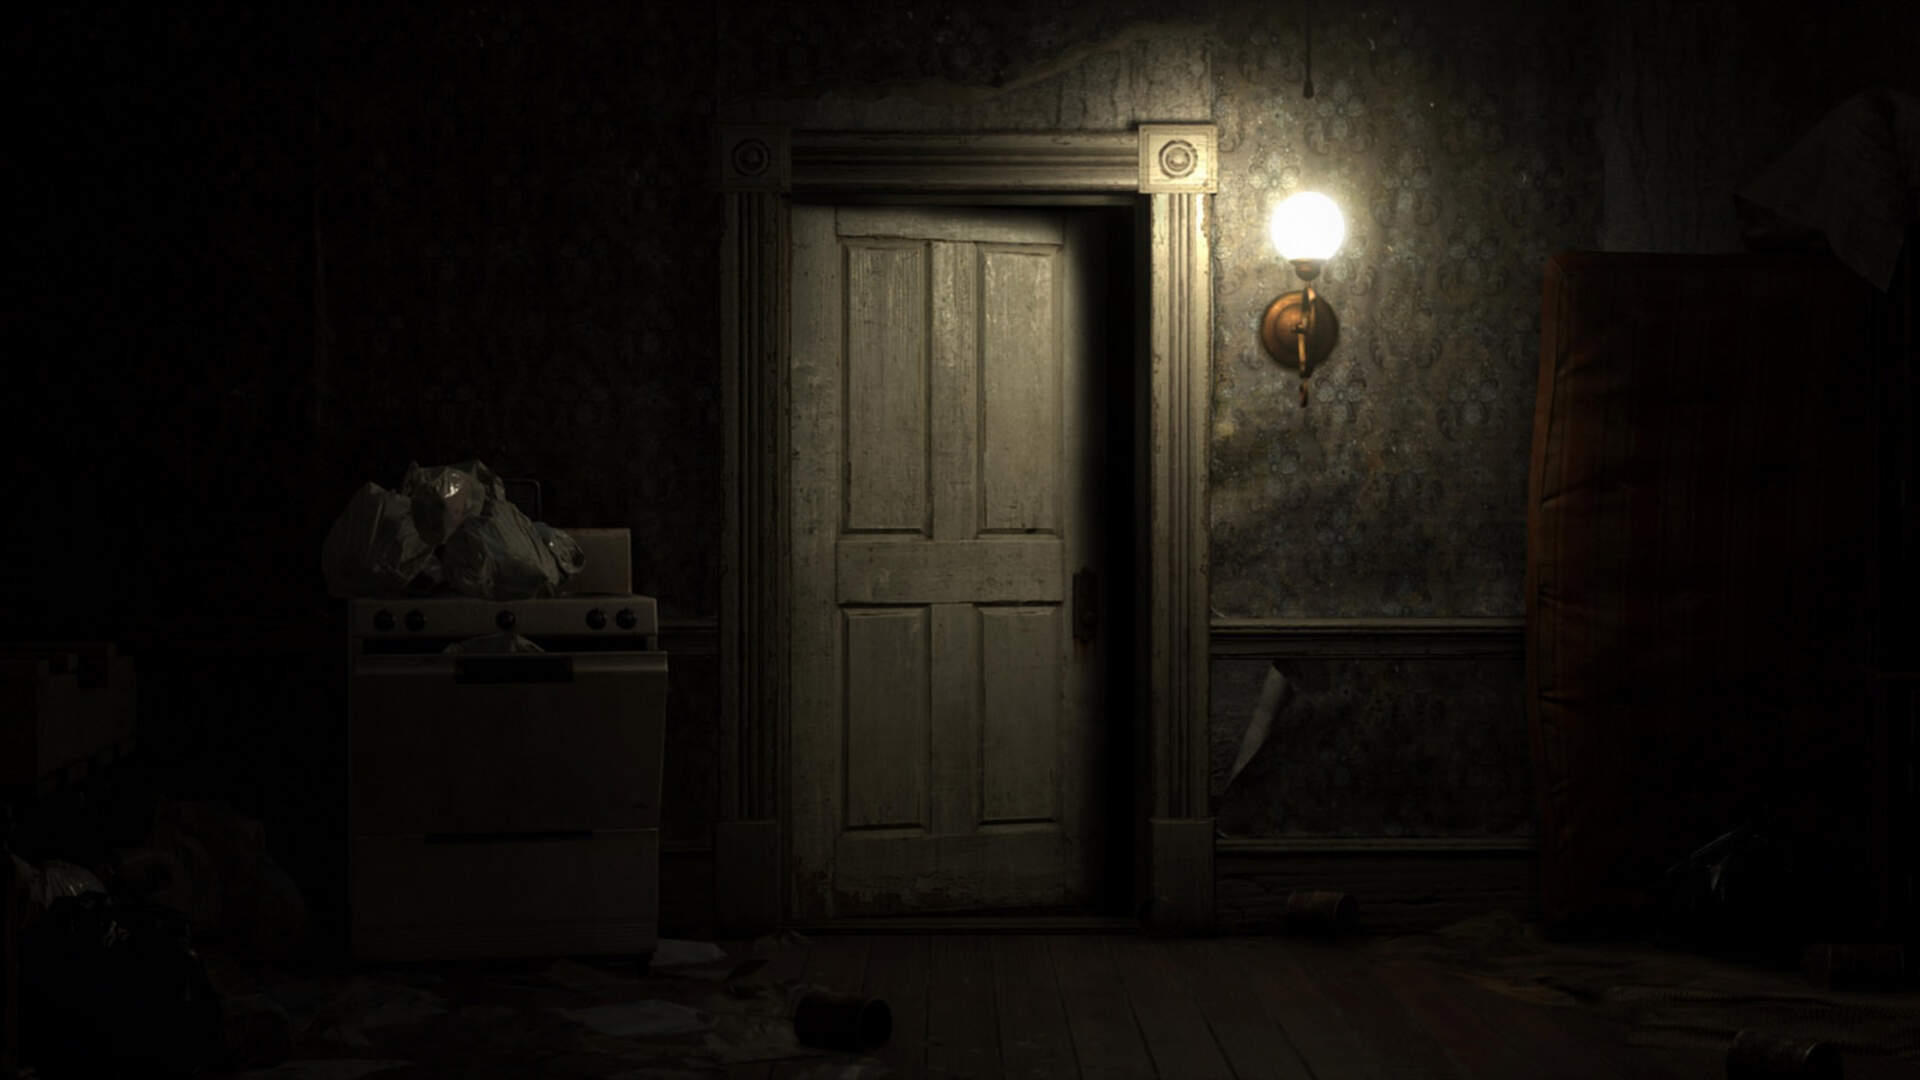 Resident Evil 7 Demo: How to Get and Use the Dirty Coin, All Demo Endings